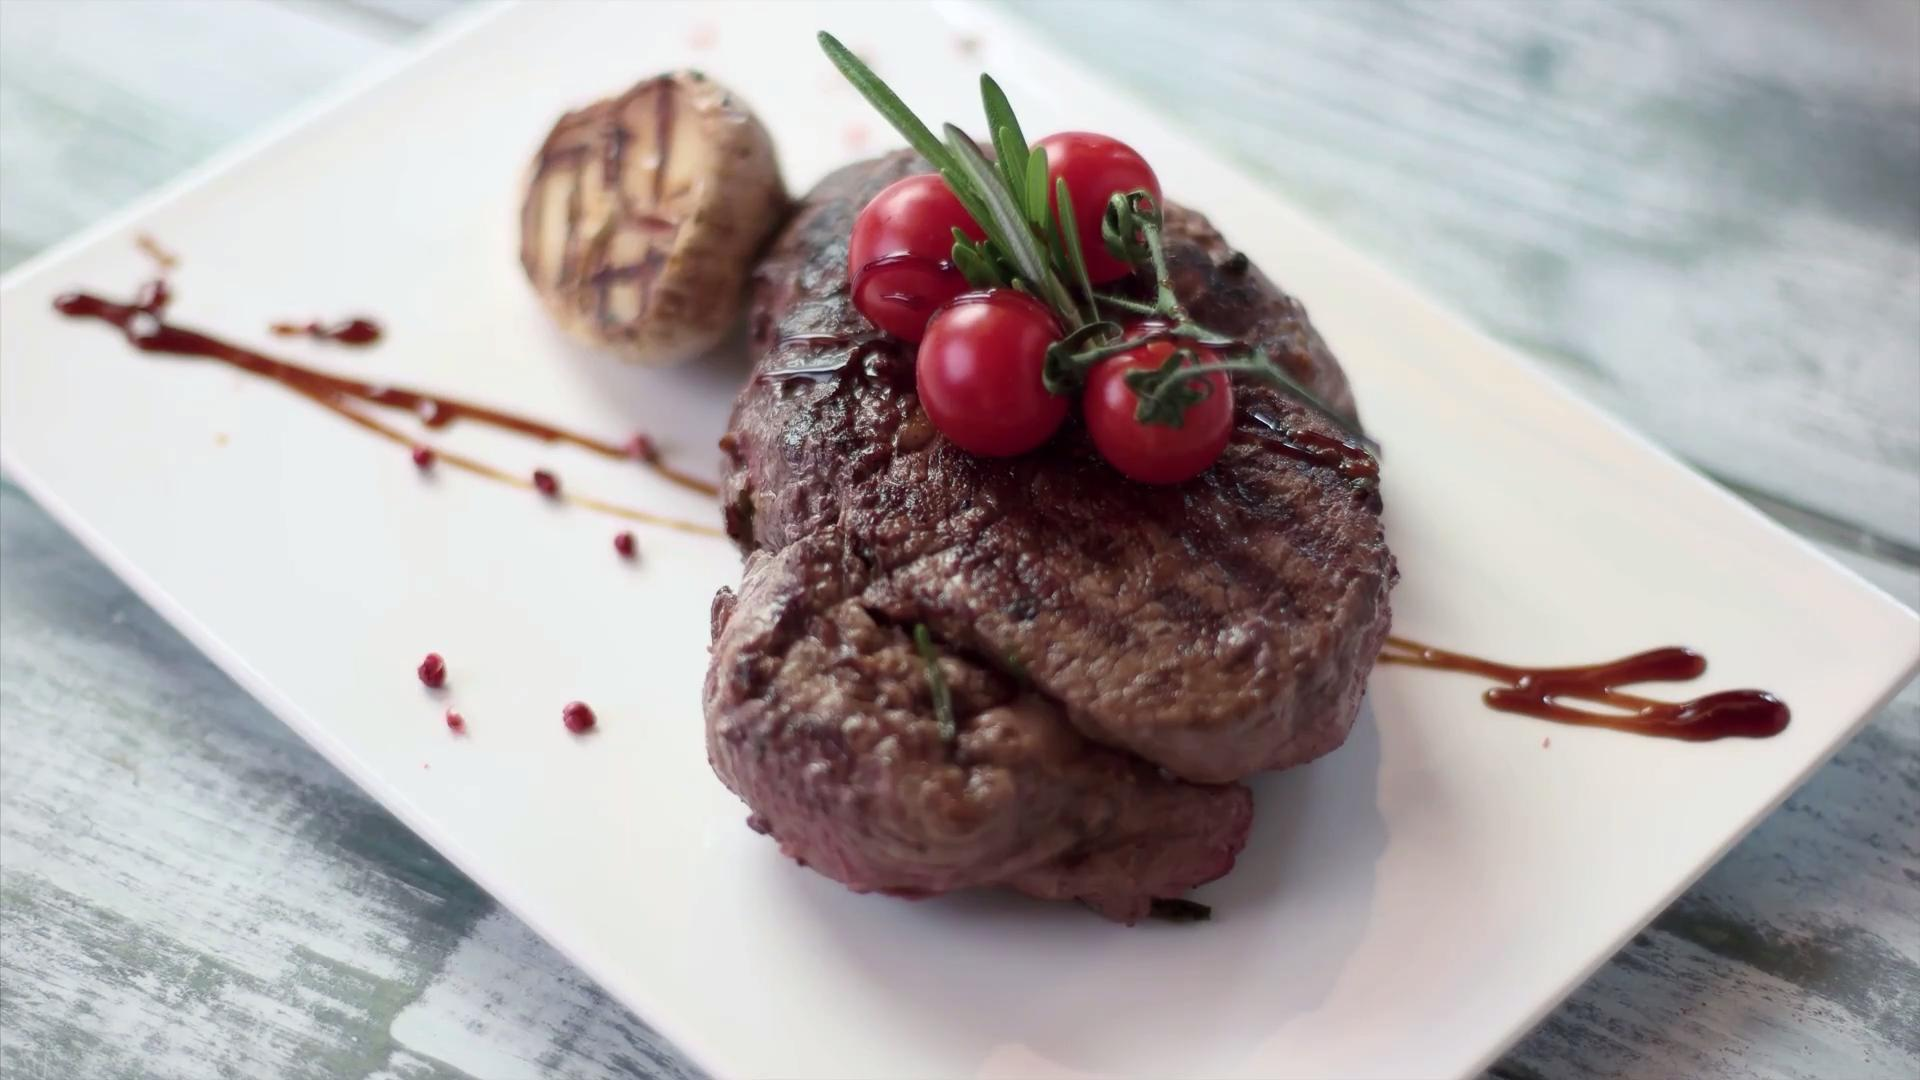 This Steakhouse Is the Best Restaurant Chain in America, According to TripAdvisor